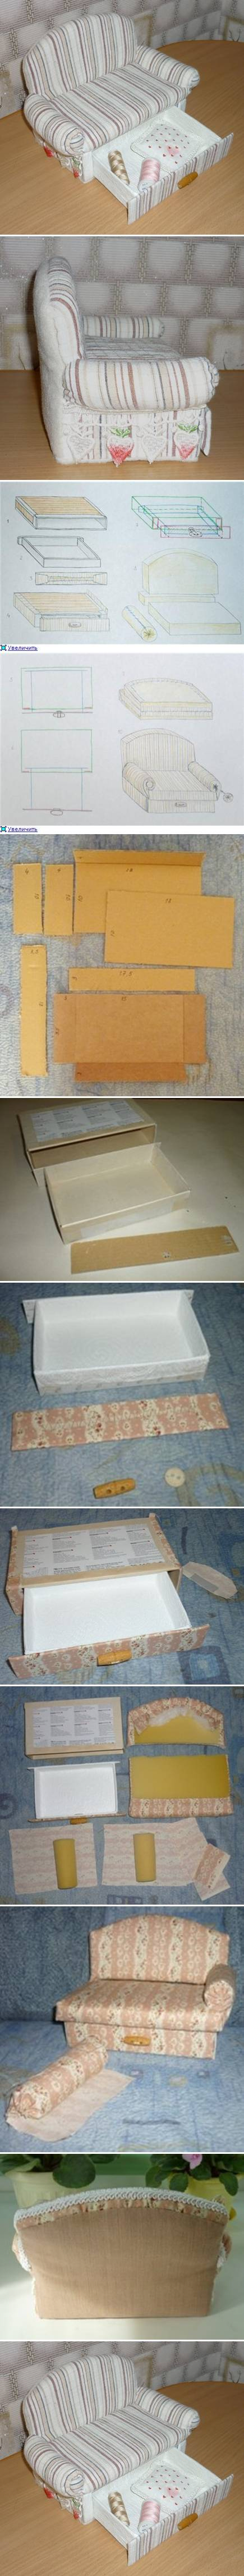 How to make Cardboard Sofa with Drawer storage unit step by step DIY tutorial instructions